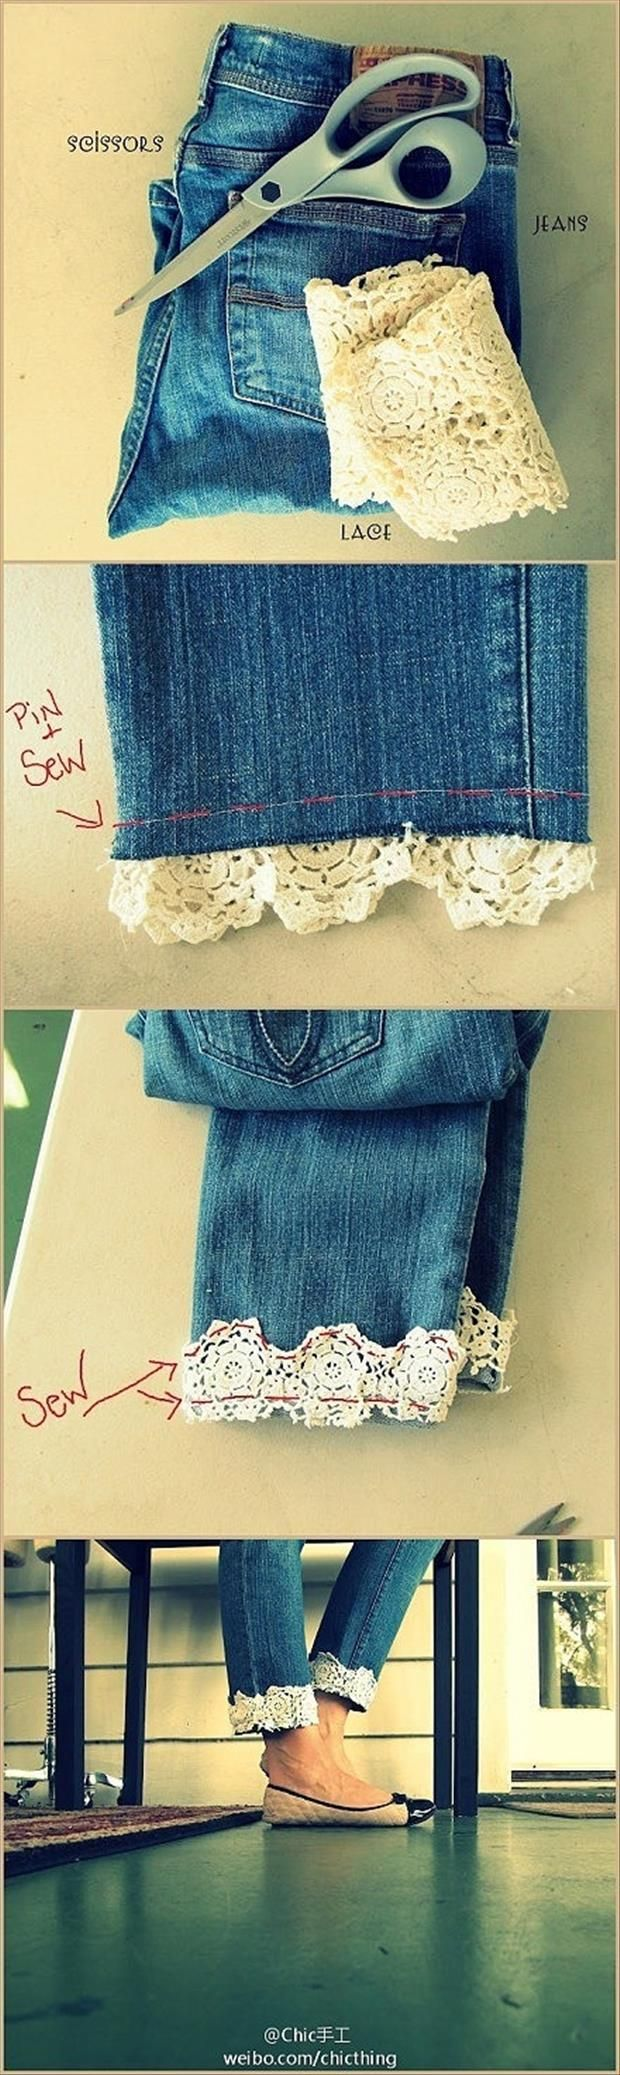 Otra idea para modificar un jeans, mi prenda favorita